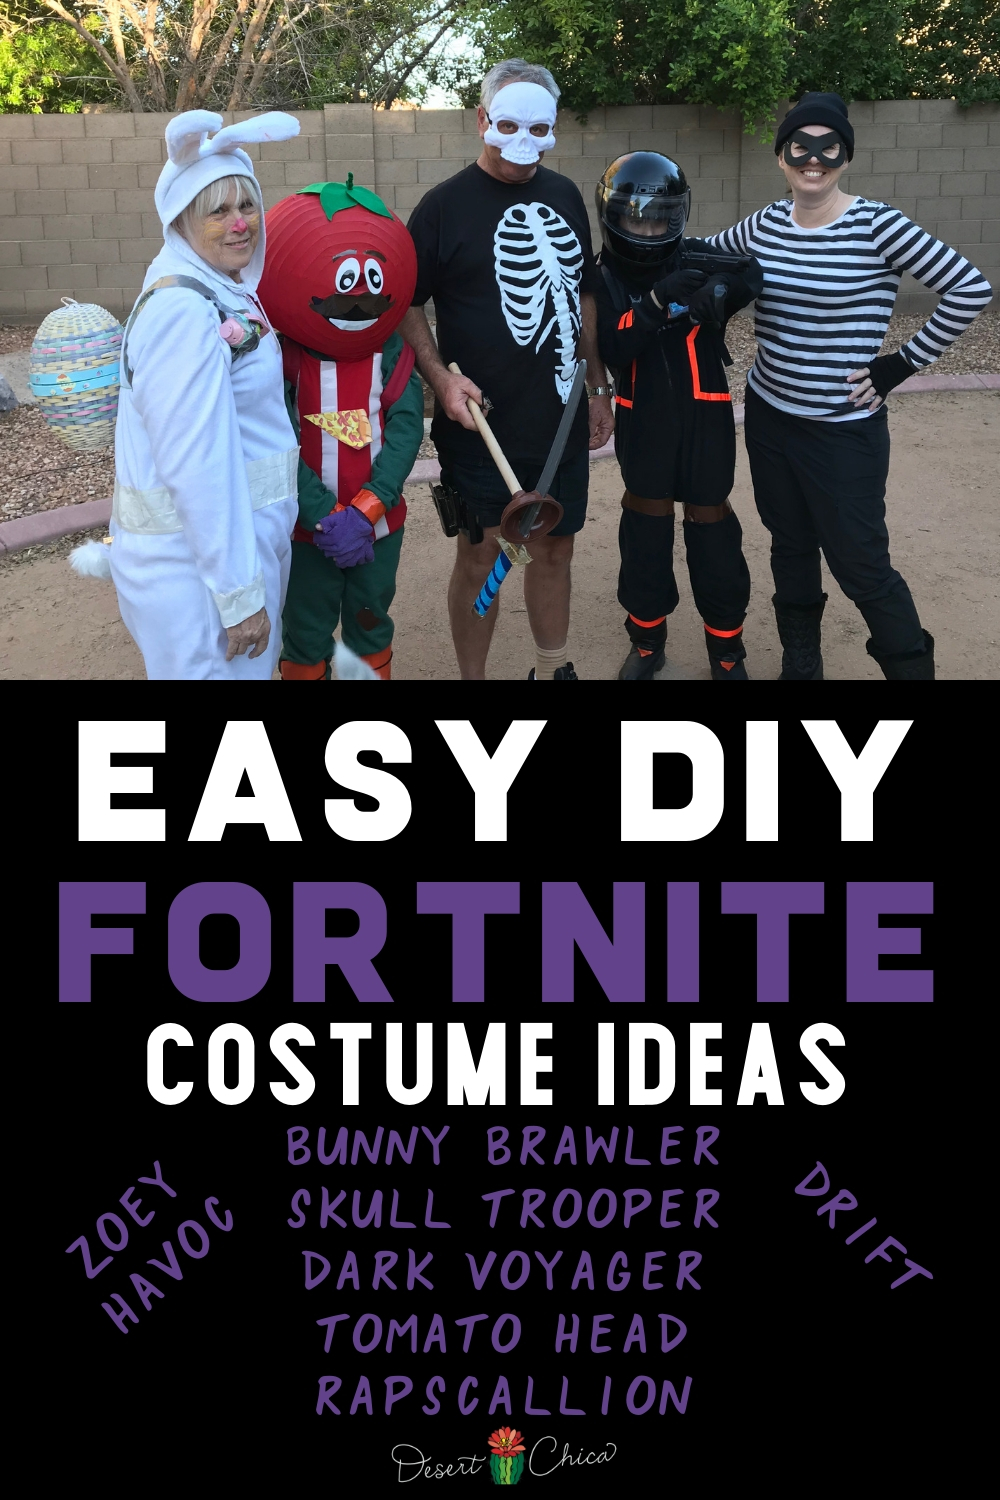 Need a simple DIY Fortnite costume for Halloween or themed party? I have several homemade Fortnite costume ideas good for kids including both boys and girl and adults too. Check out our ideas for Bunny Brawler, Skull Trooper, Dark Voyager, Rapscallion, Drift, Zoey, Havoc and Tomato Head! Fornite Drift | Zoey Fortnite | Fortnite DIY Costumes | Fortnight Costumes | How to make a Fortnite Costume